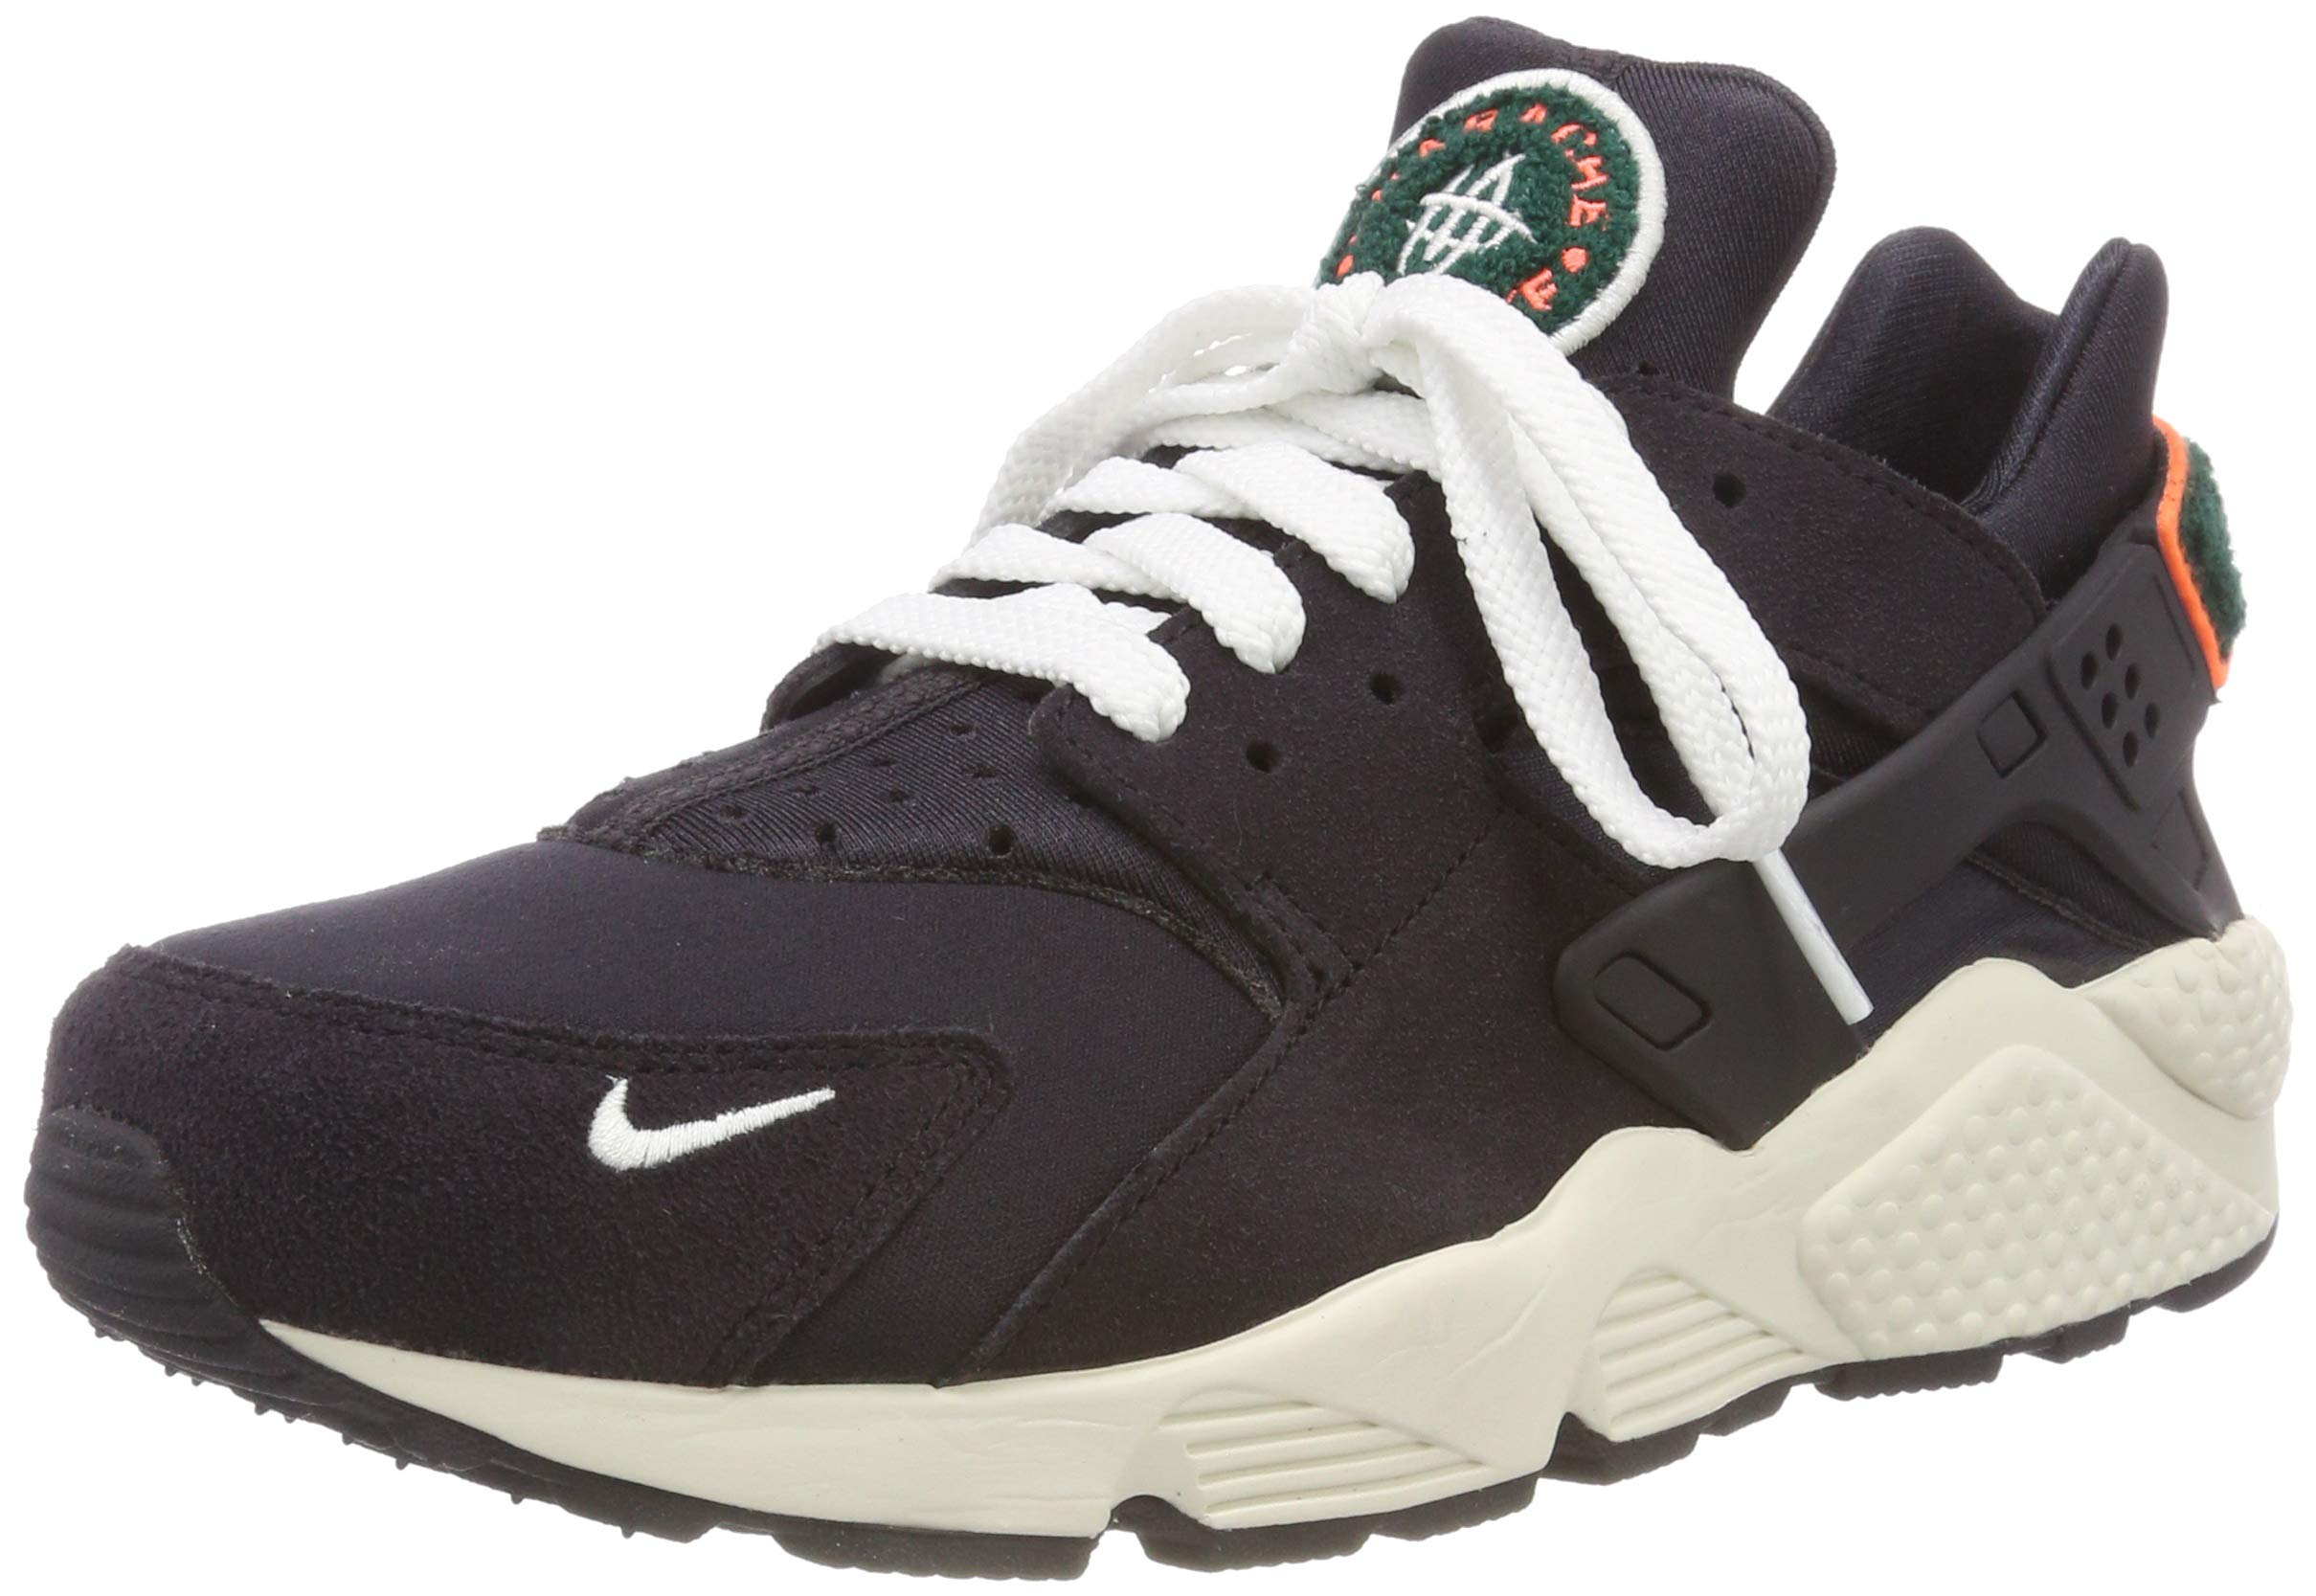 sports shoes b27ff 22a0d Galleon - Nike Air Huarache Run Premium Men s Shoes Oil Grey Sail-Rainforest  704830-015 (11 D(M) US)